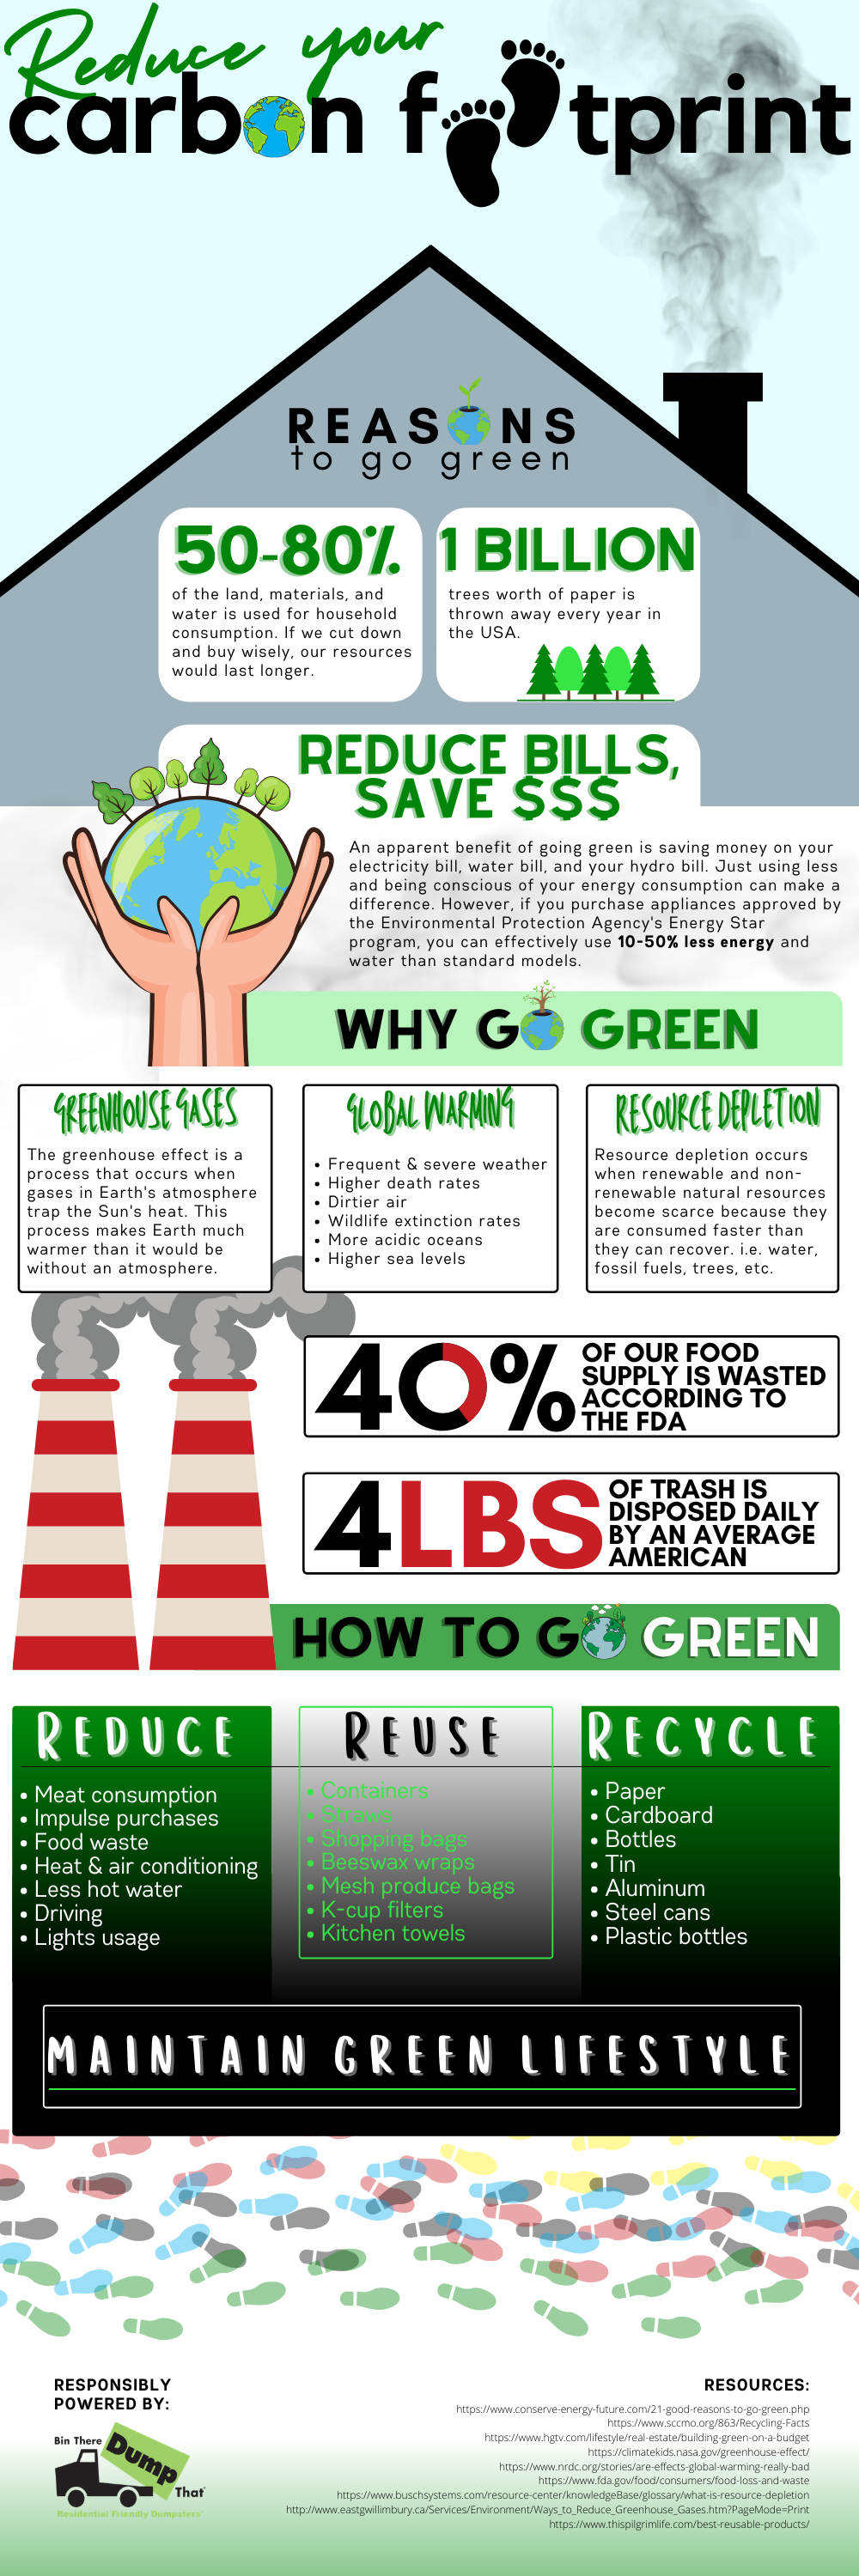 carbon footprint infographic